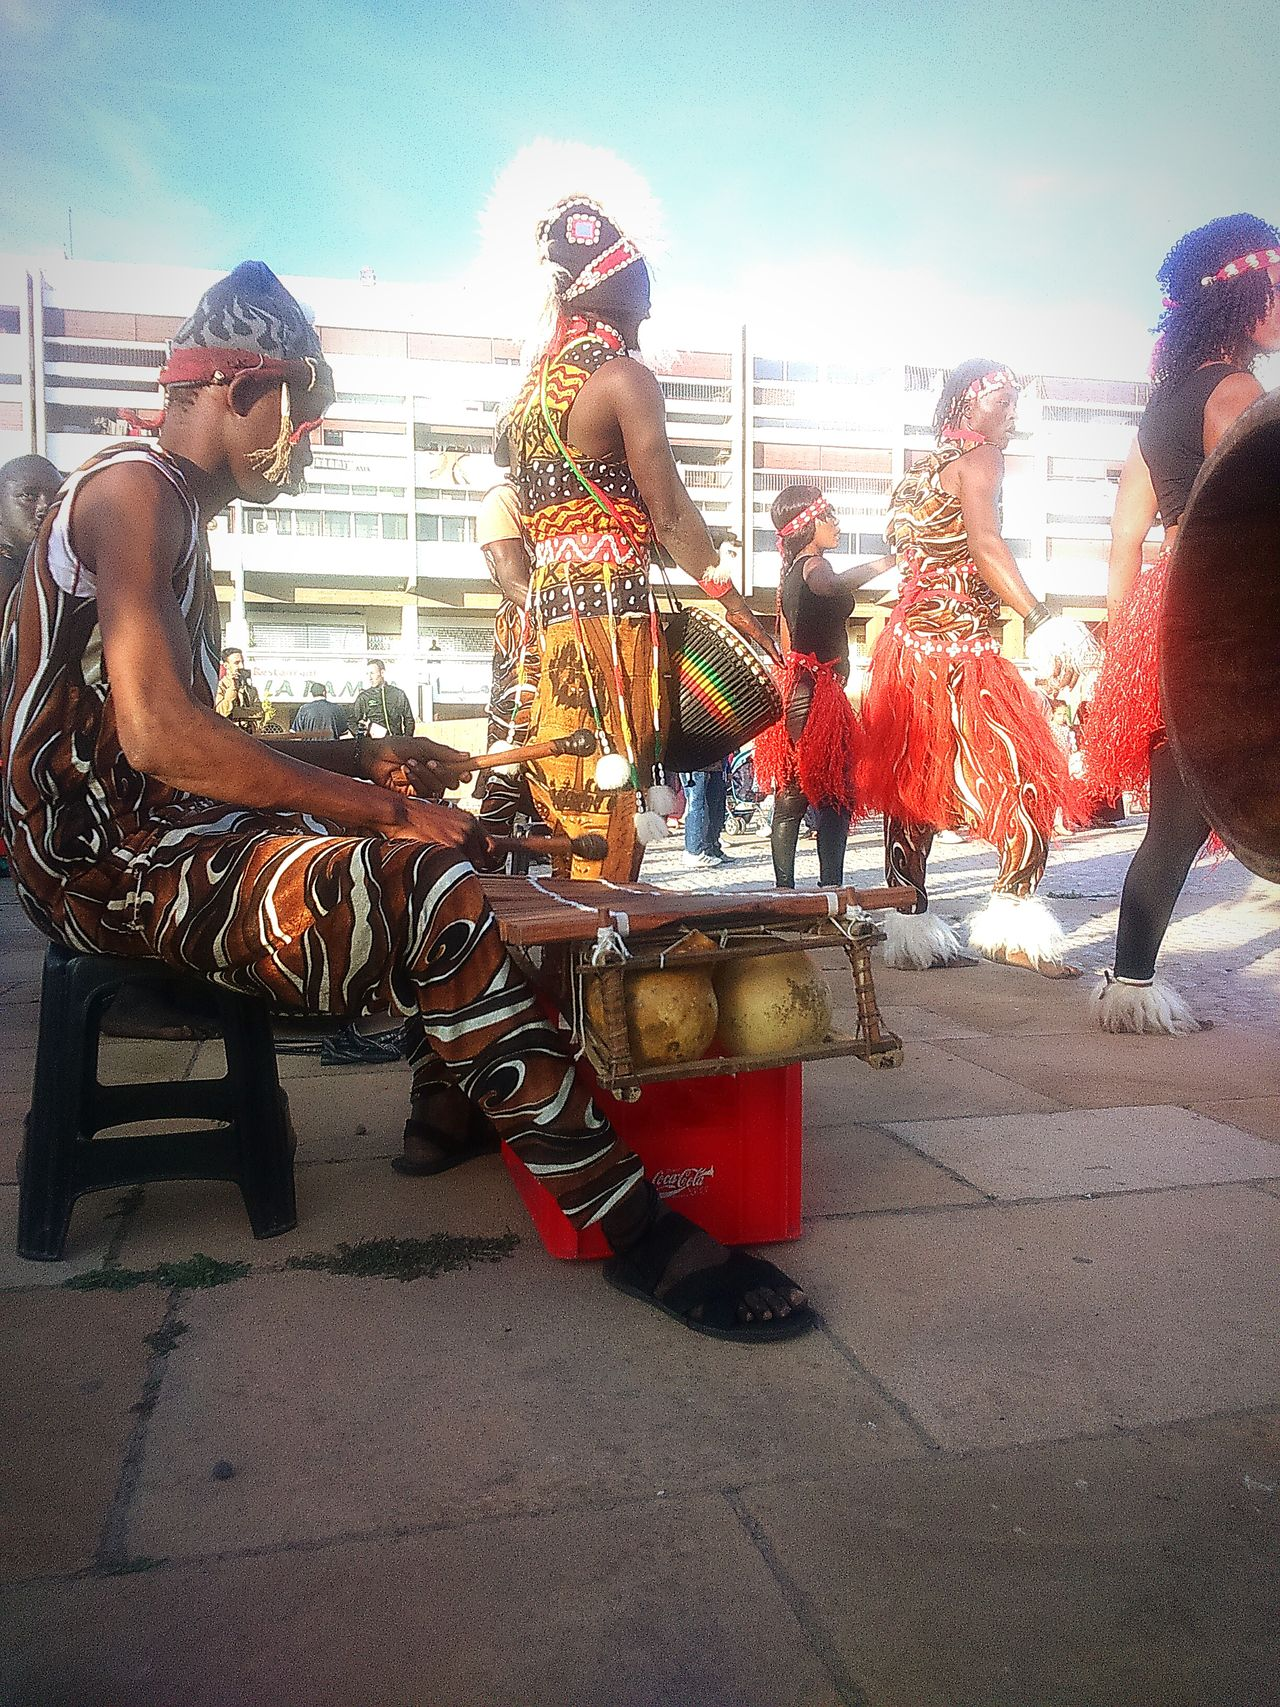 Africa Plaza Street Photography Morocco Gnawa MusicPercussionPercussion